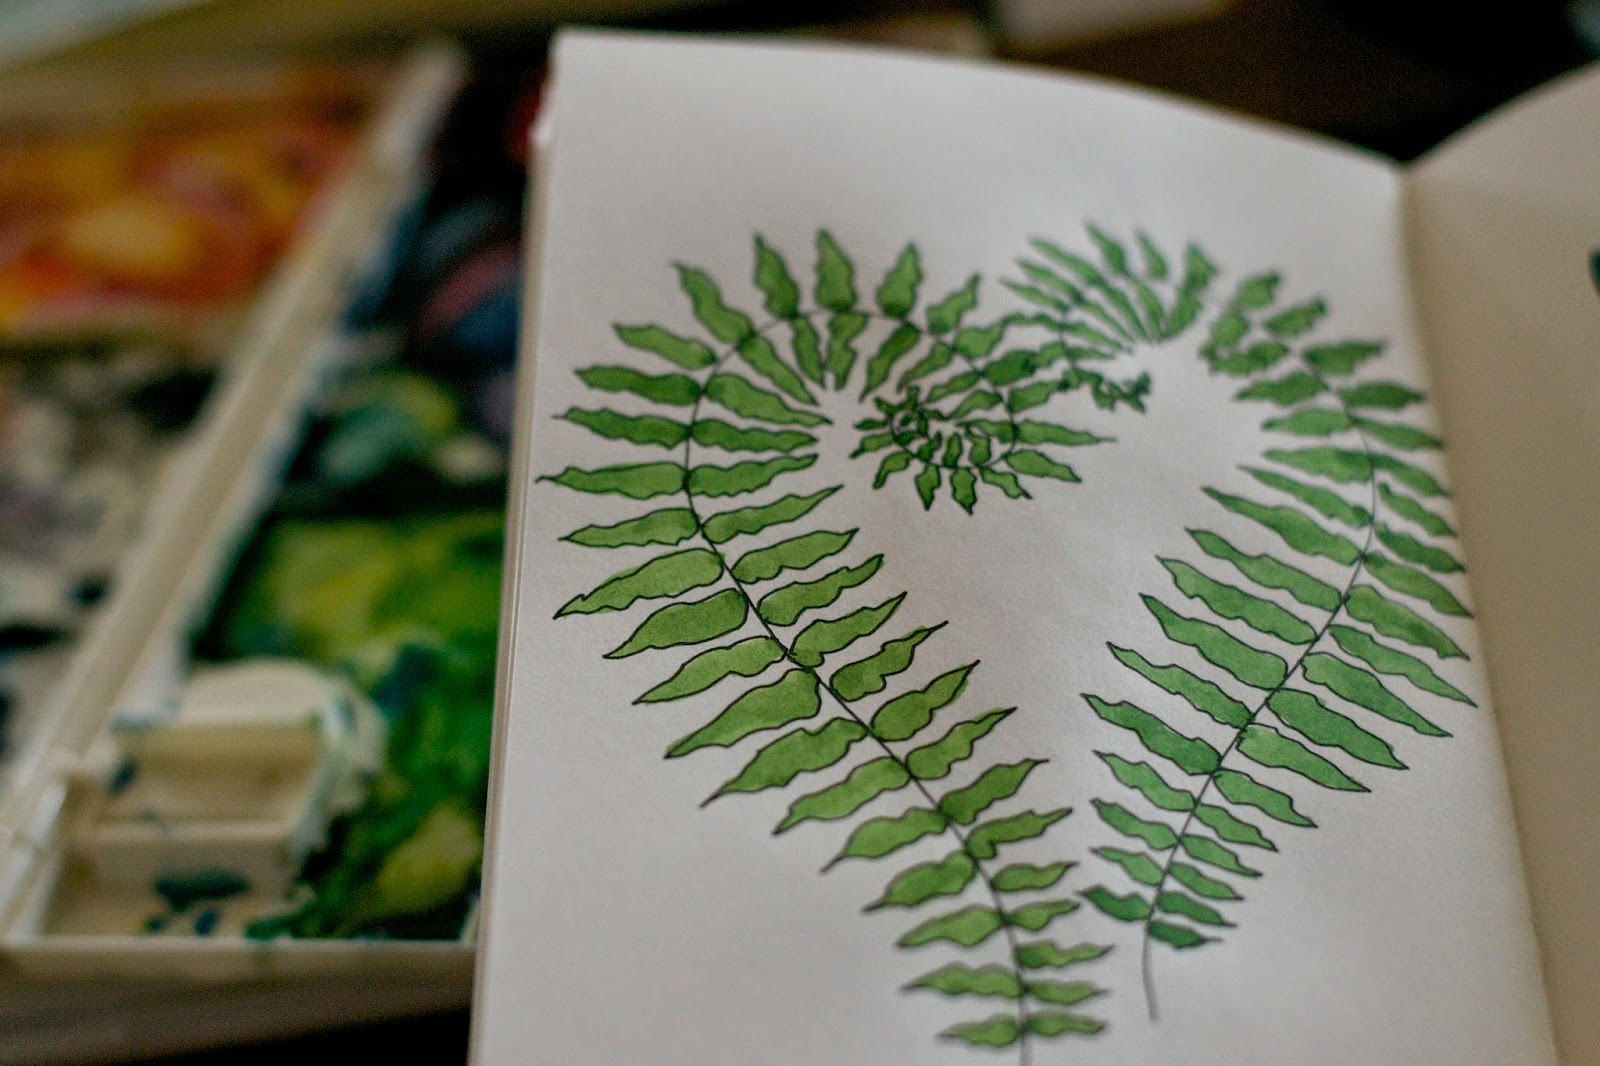 Sketchbook peek: Ferns unfurling.